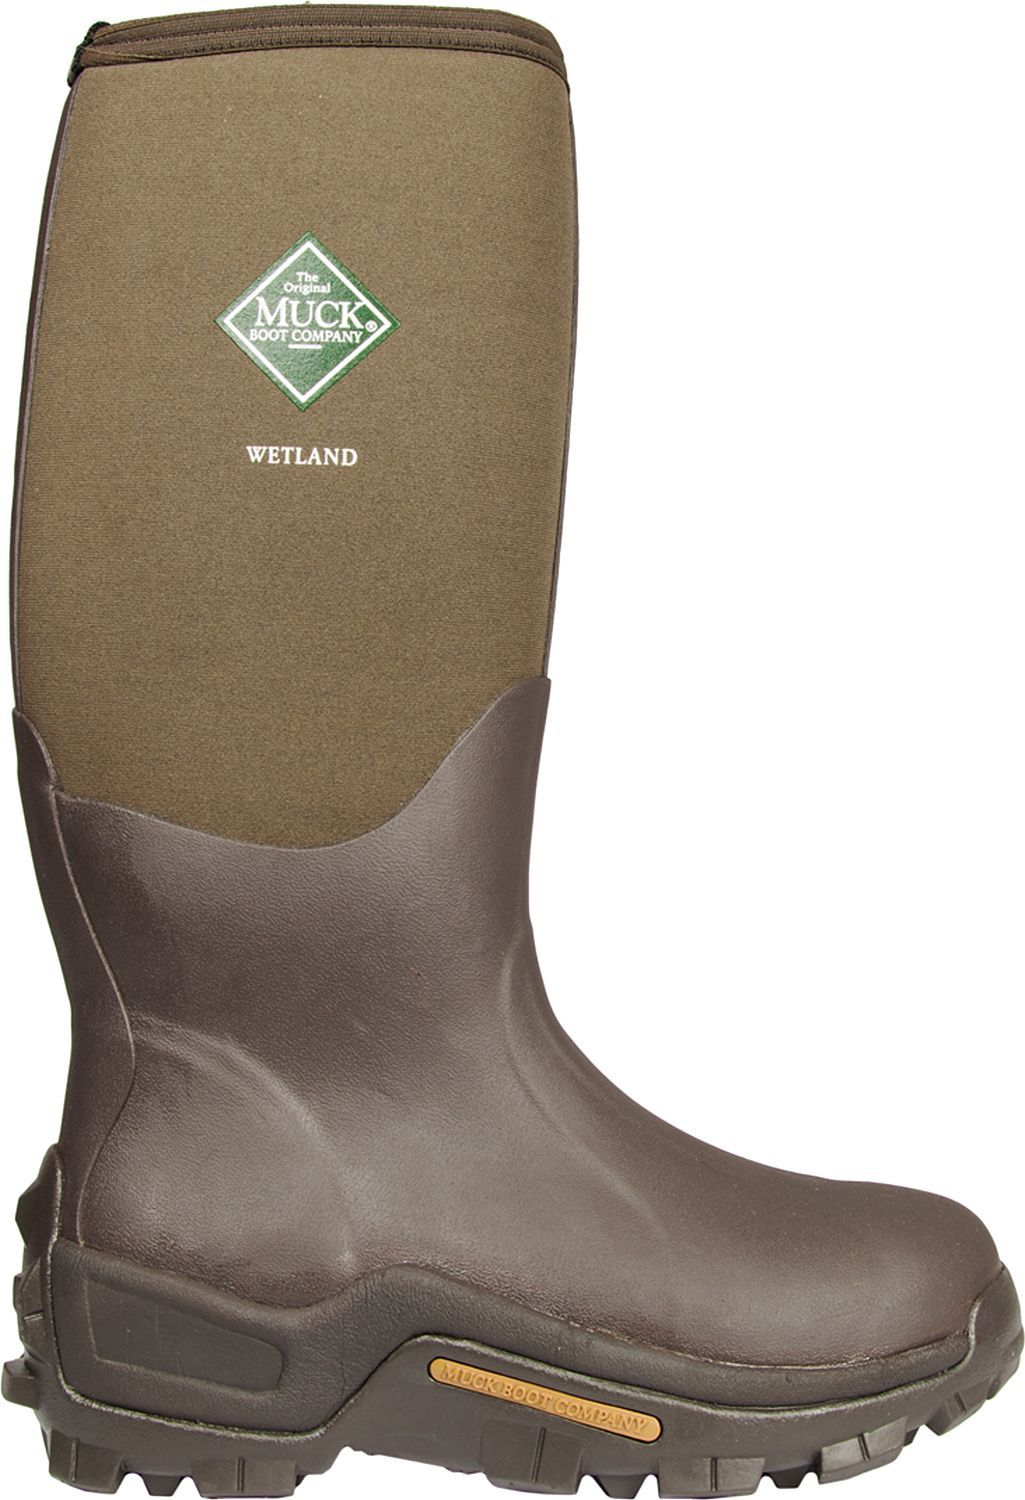 46549254c064d Muck Boots Company Men's Wetland Rubber Hunting Boots | DICK'S Sporting  GoodsProposition 65 warning iconProposition 65 warning icon